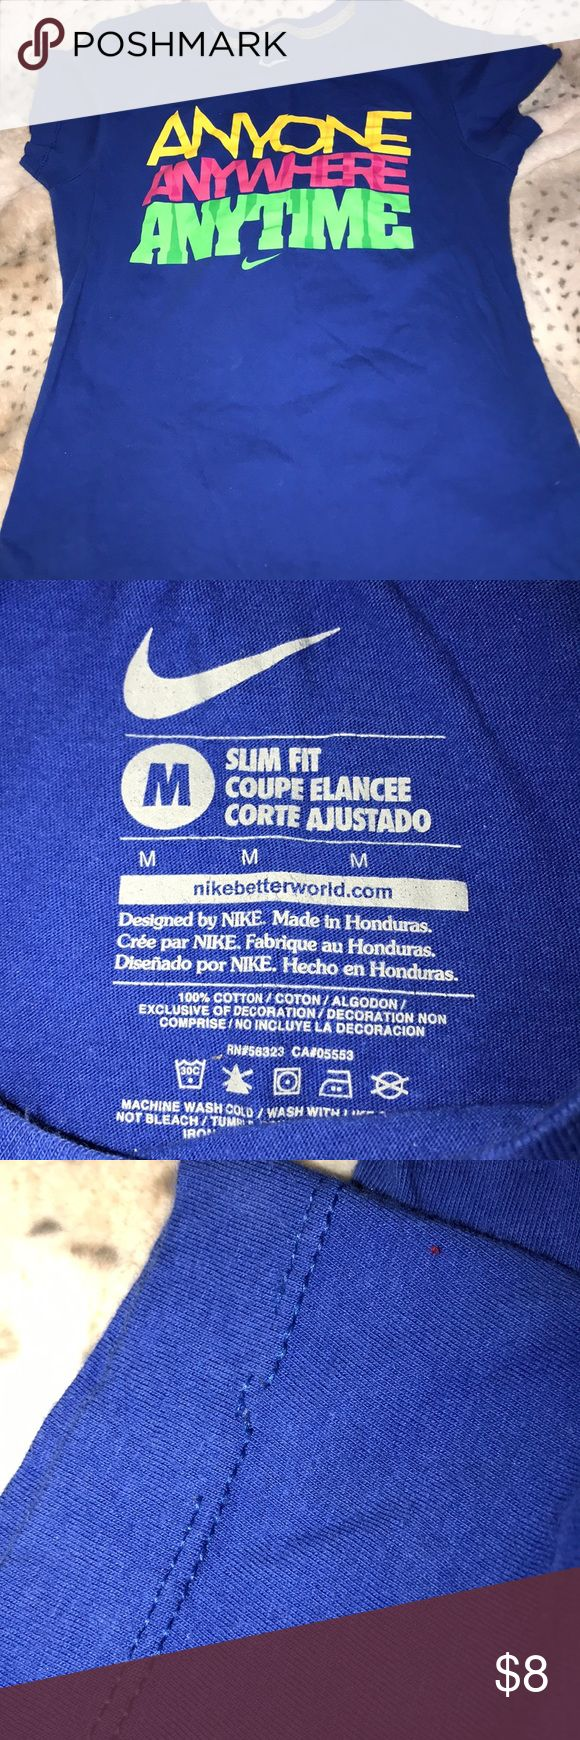 Medium Nike workout shirt Size woman's medium little snags in hem. Vibrant color may be some pilling I don't see any but opinions may very Nike brand Nike Tops Tees - Short Sleeve